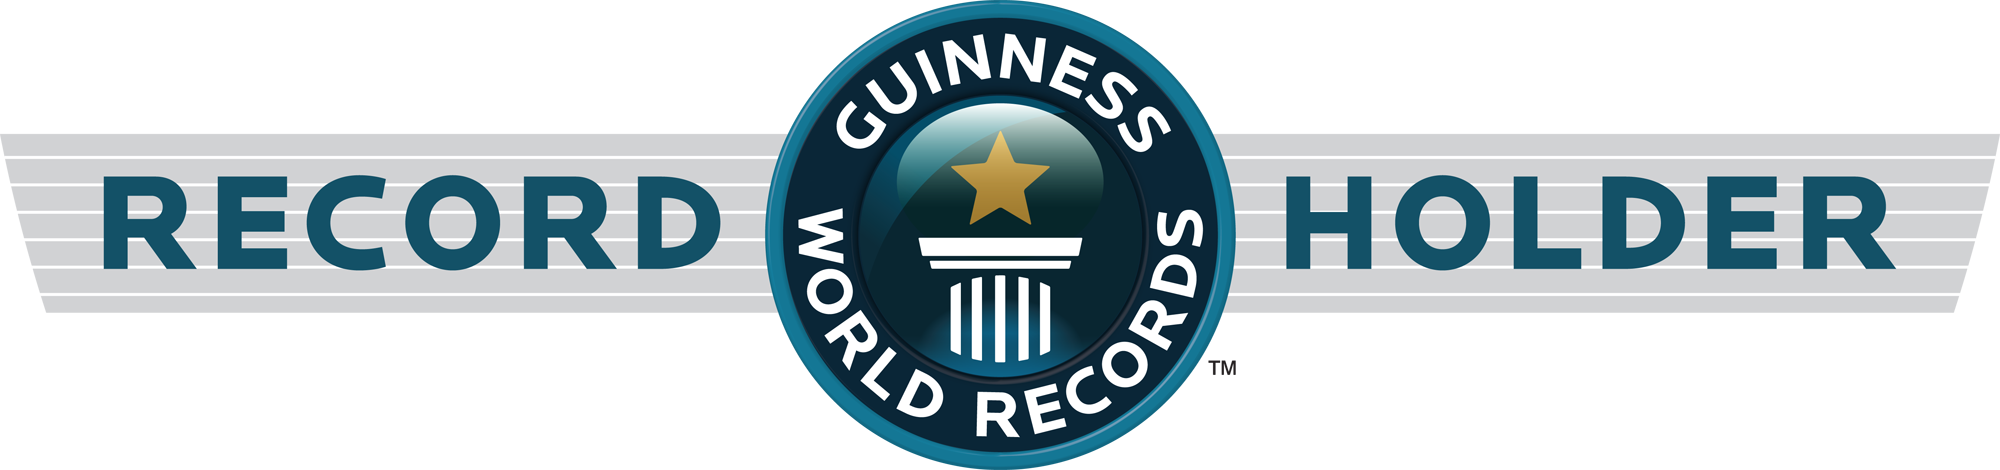 Guinness World Records' Record Holder